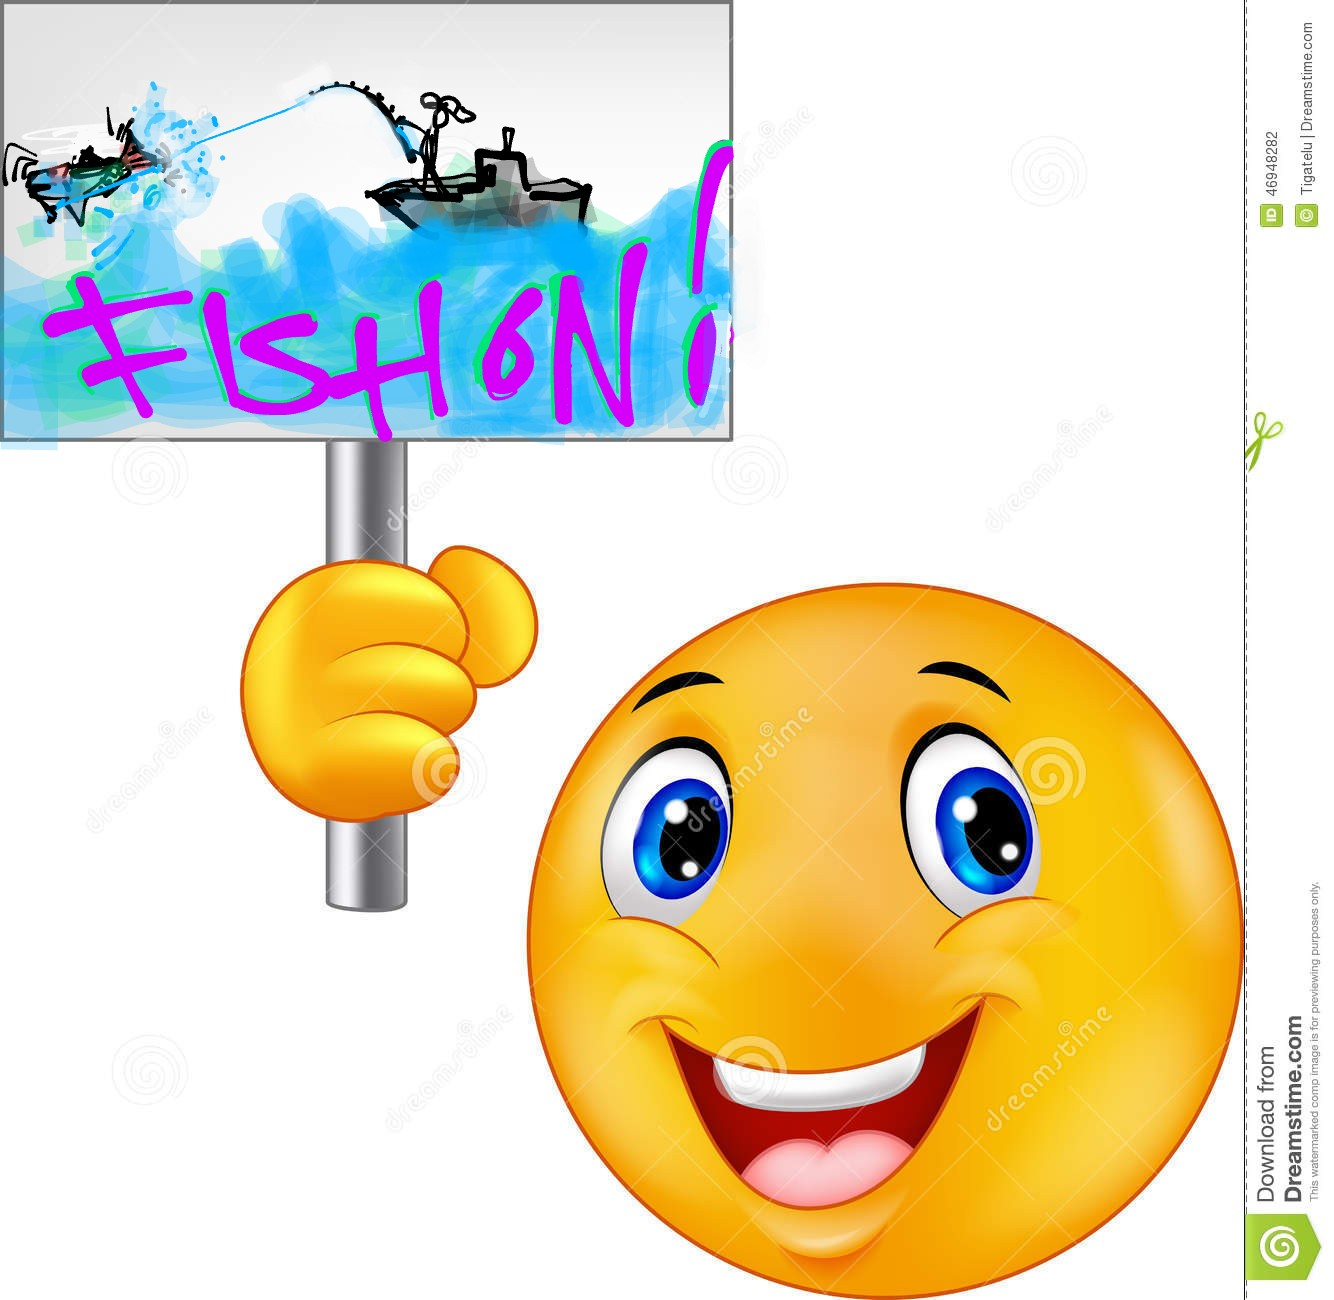 smiley-emoticon-holding-blank-sign-illustration-46948282~2.jpg